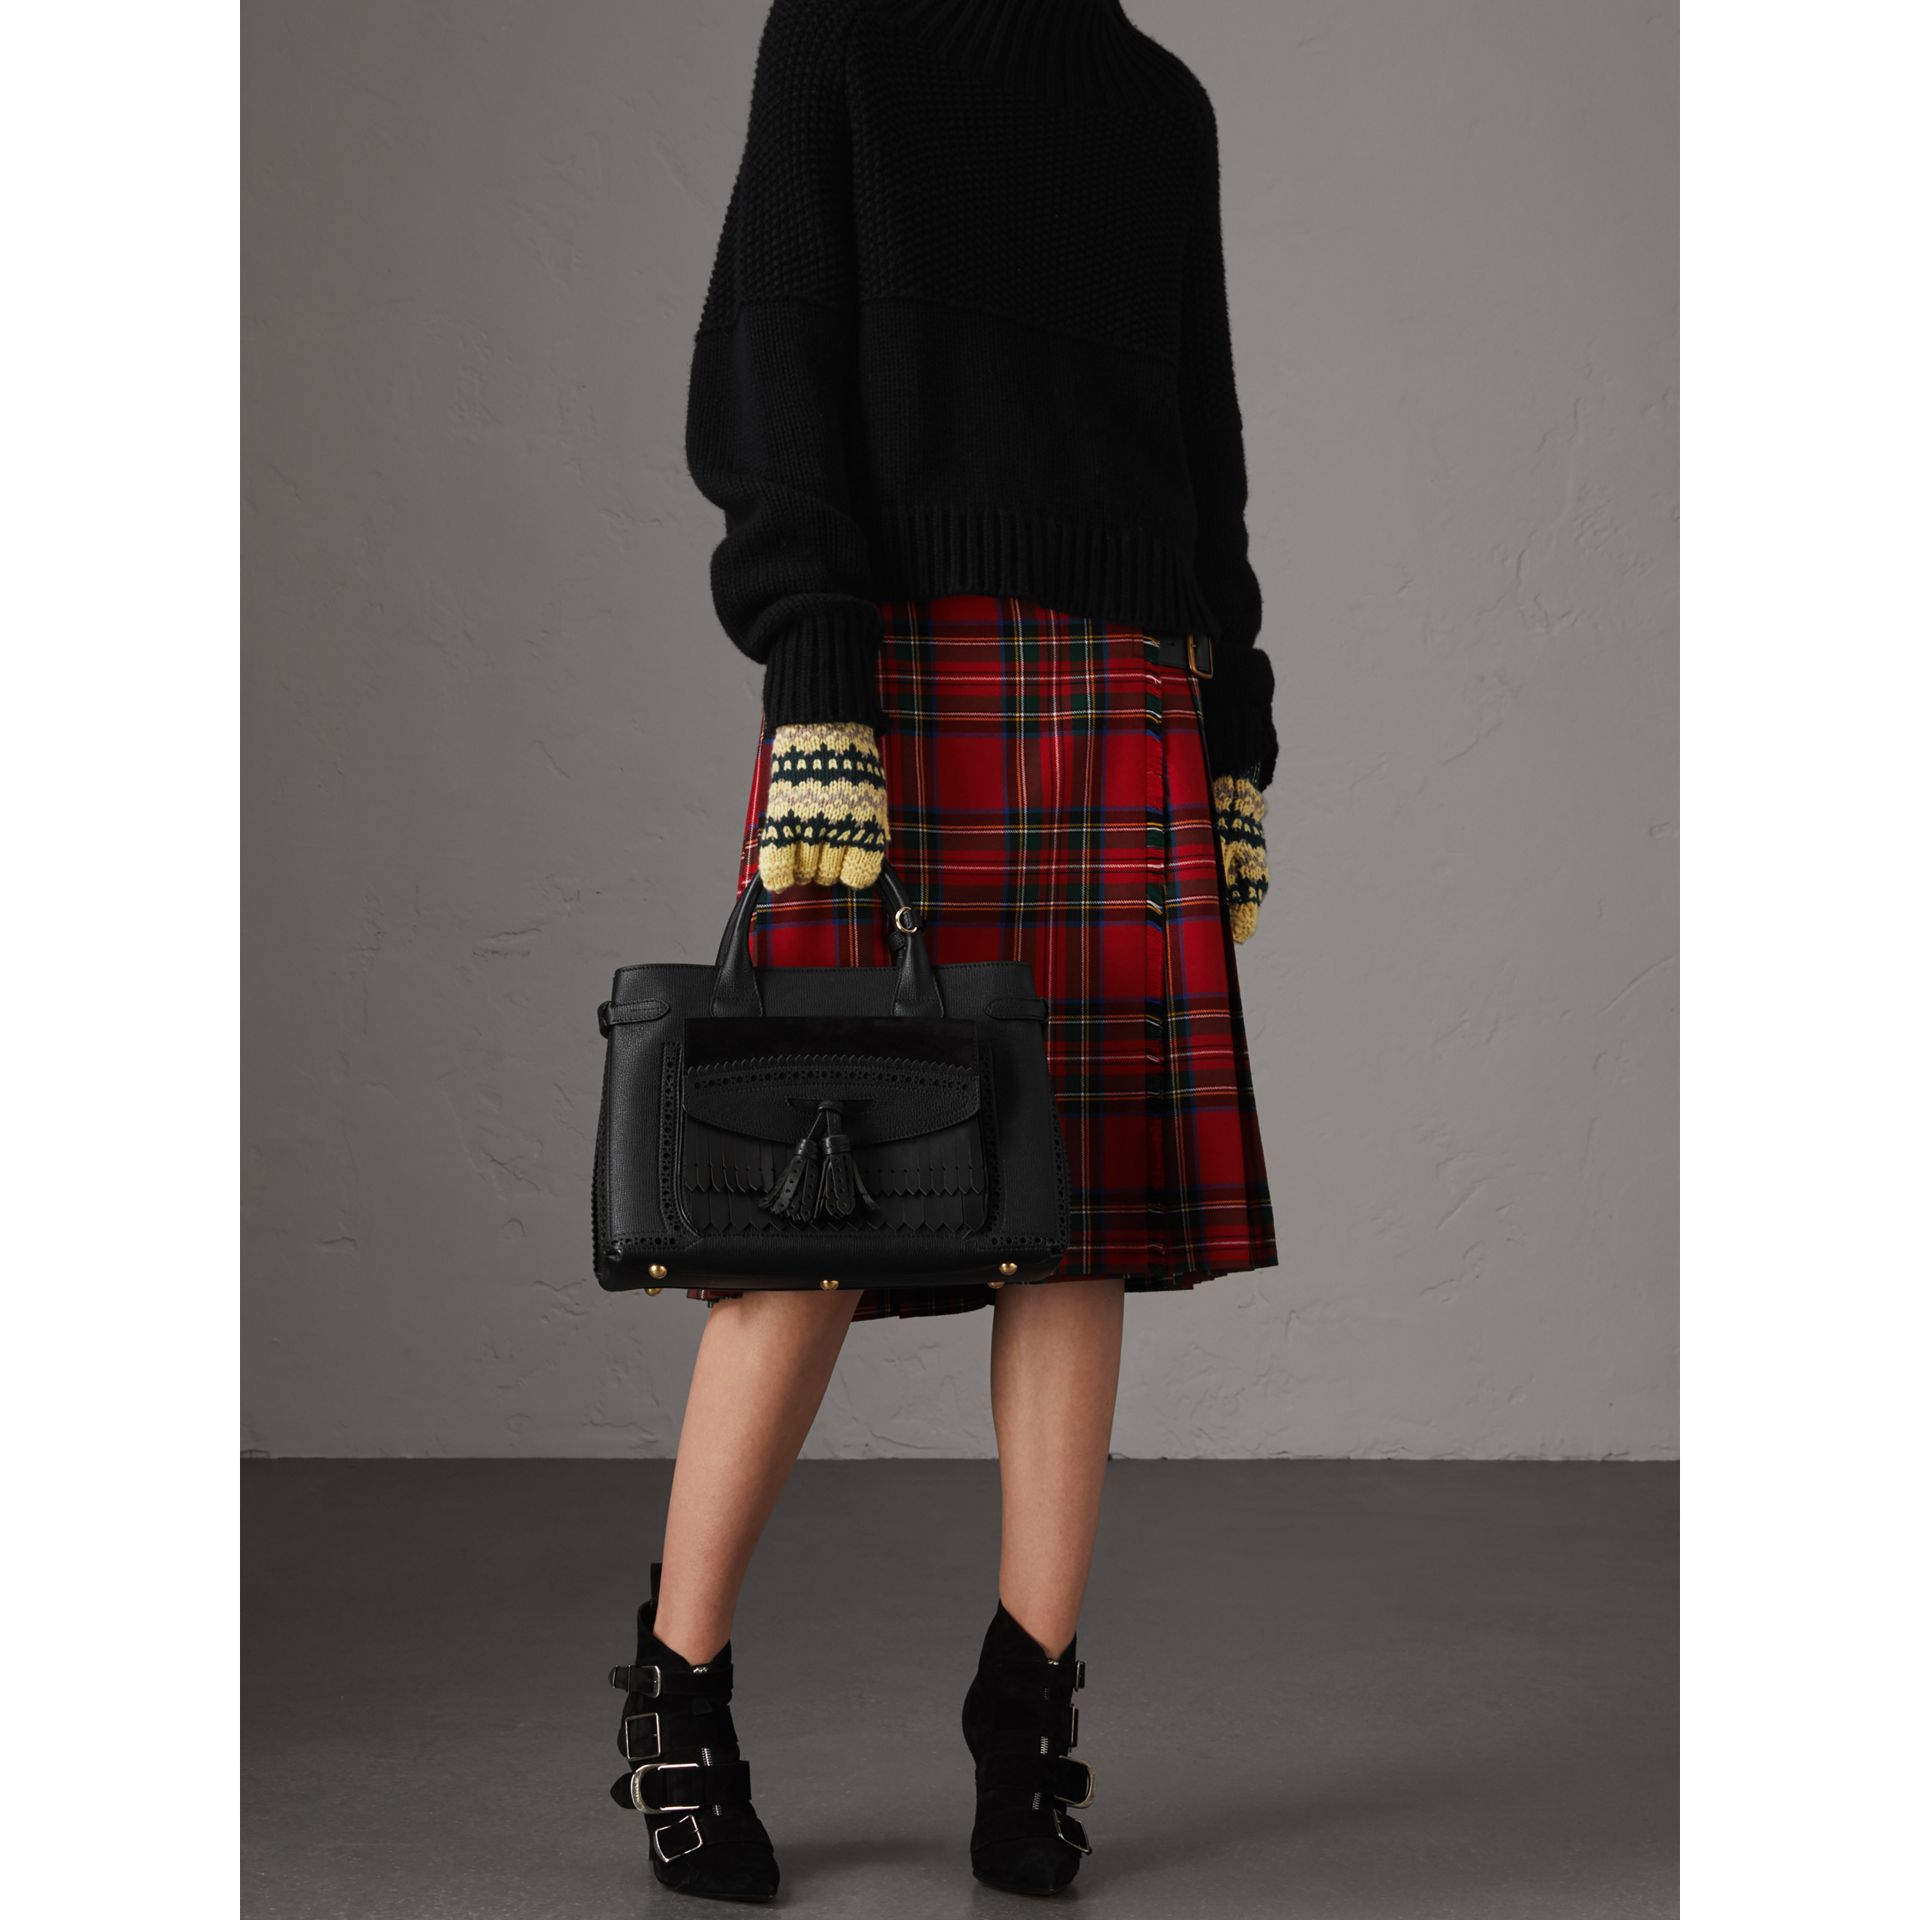 Sac The Banner moyen de style richelieu (Noir) - Femme | Burberry Canada - photo de la galerie 2